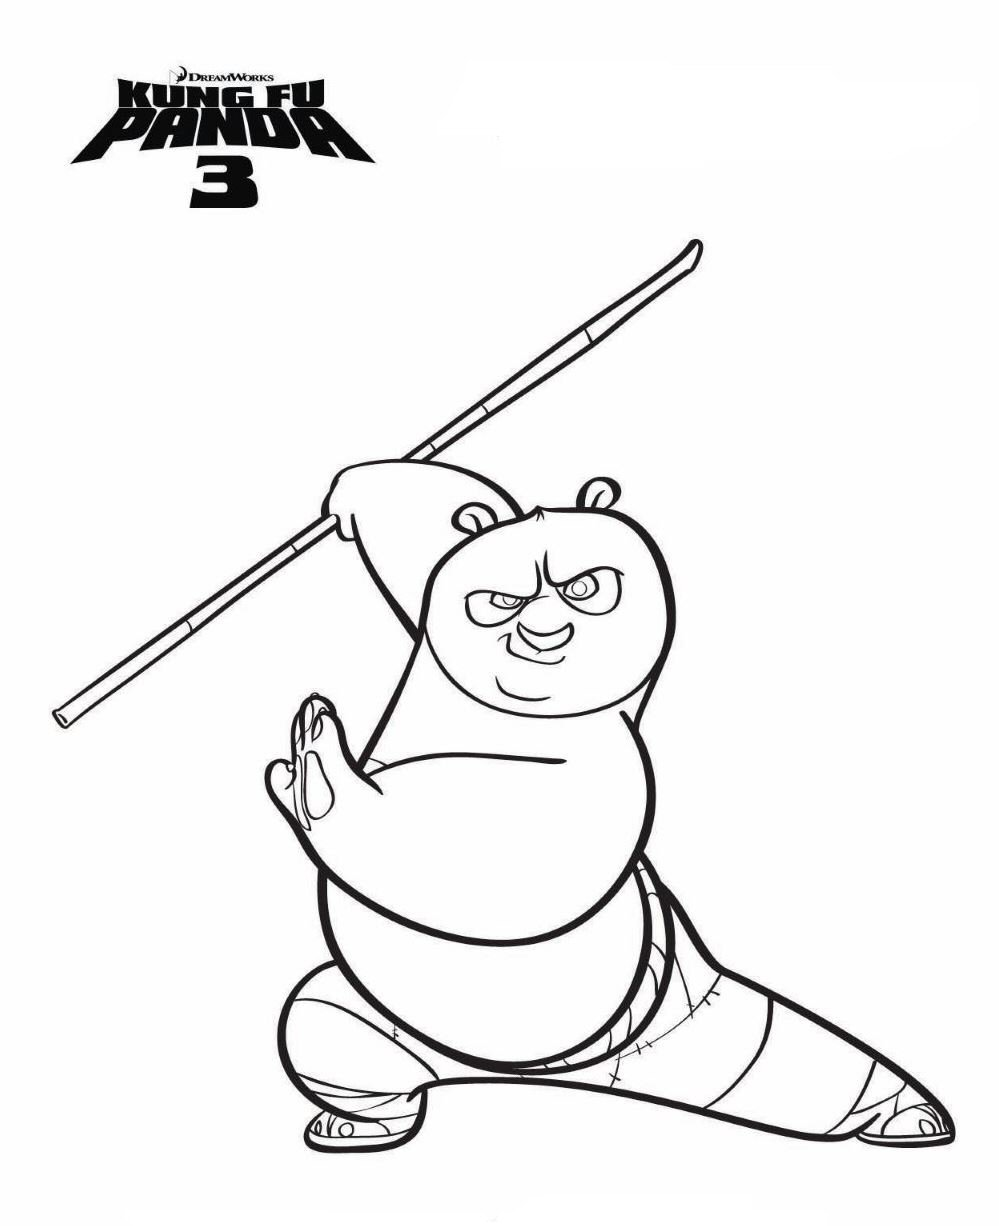 999x1226 Kids N 7 Coloring Pages Of Kung Fu Panda 3